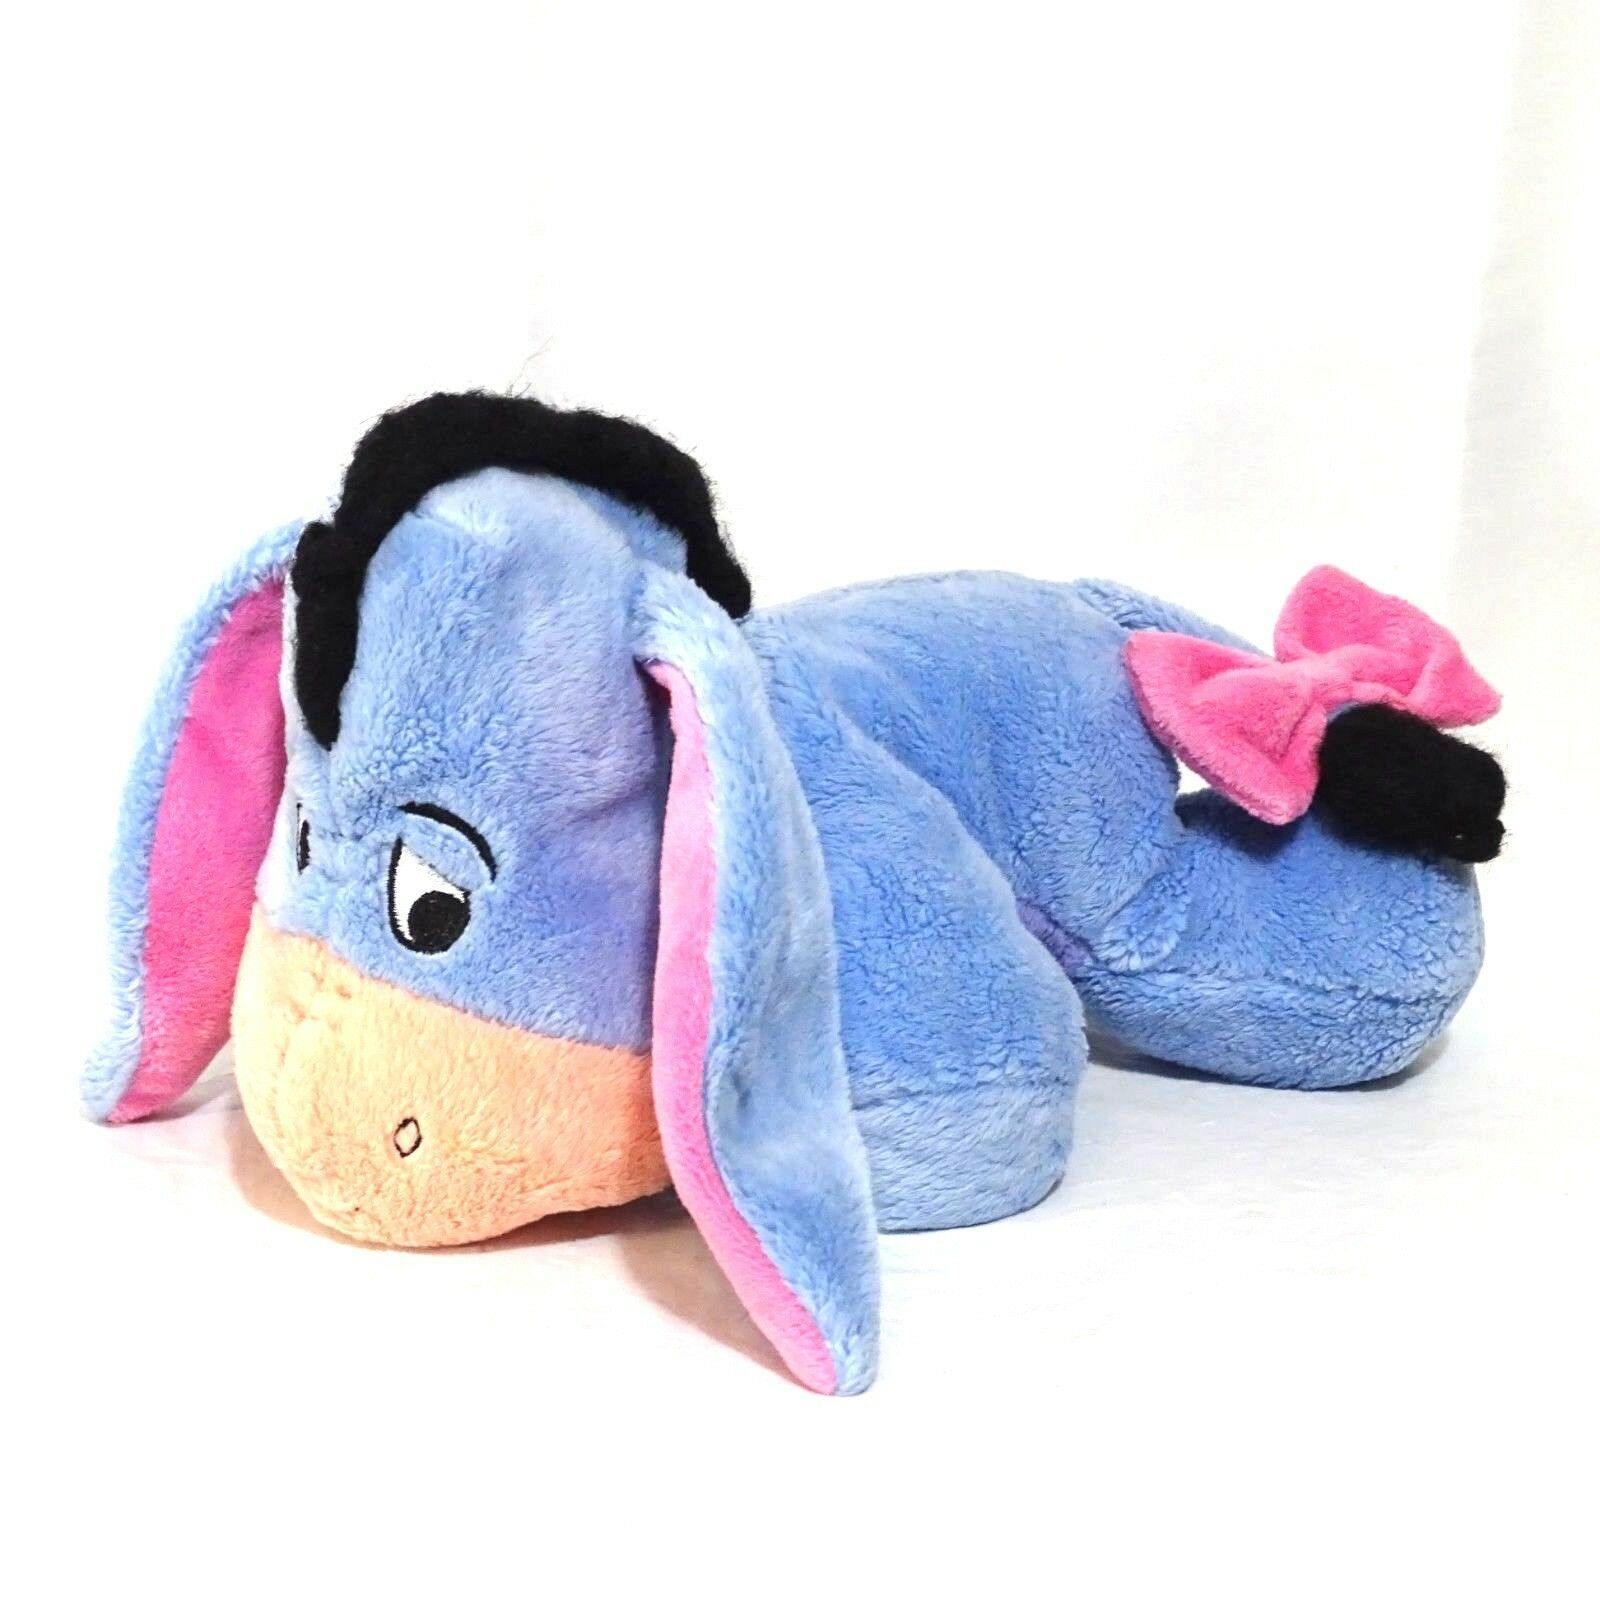 Disney Winnie the Pooh Eeyore Stuffed Plush Toy Blue Pink  image 1